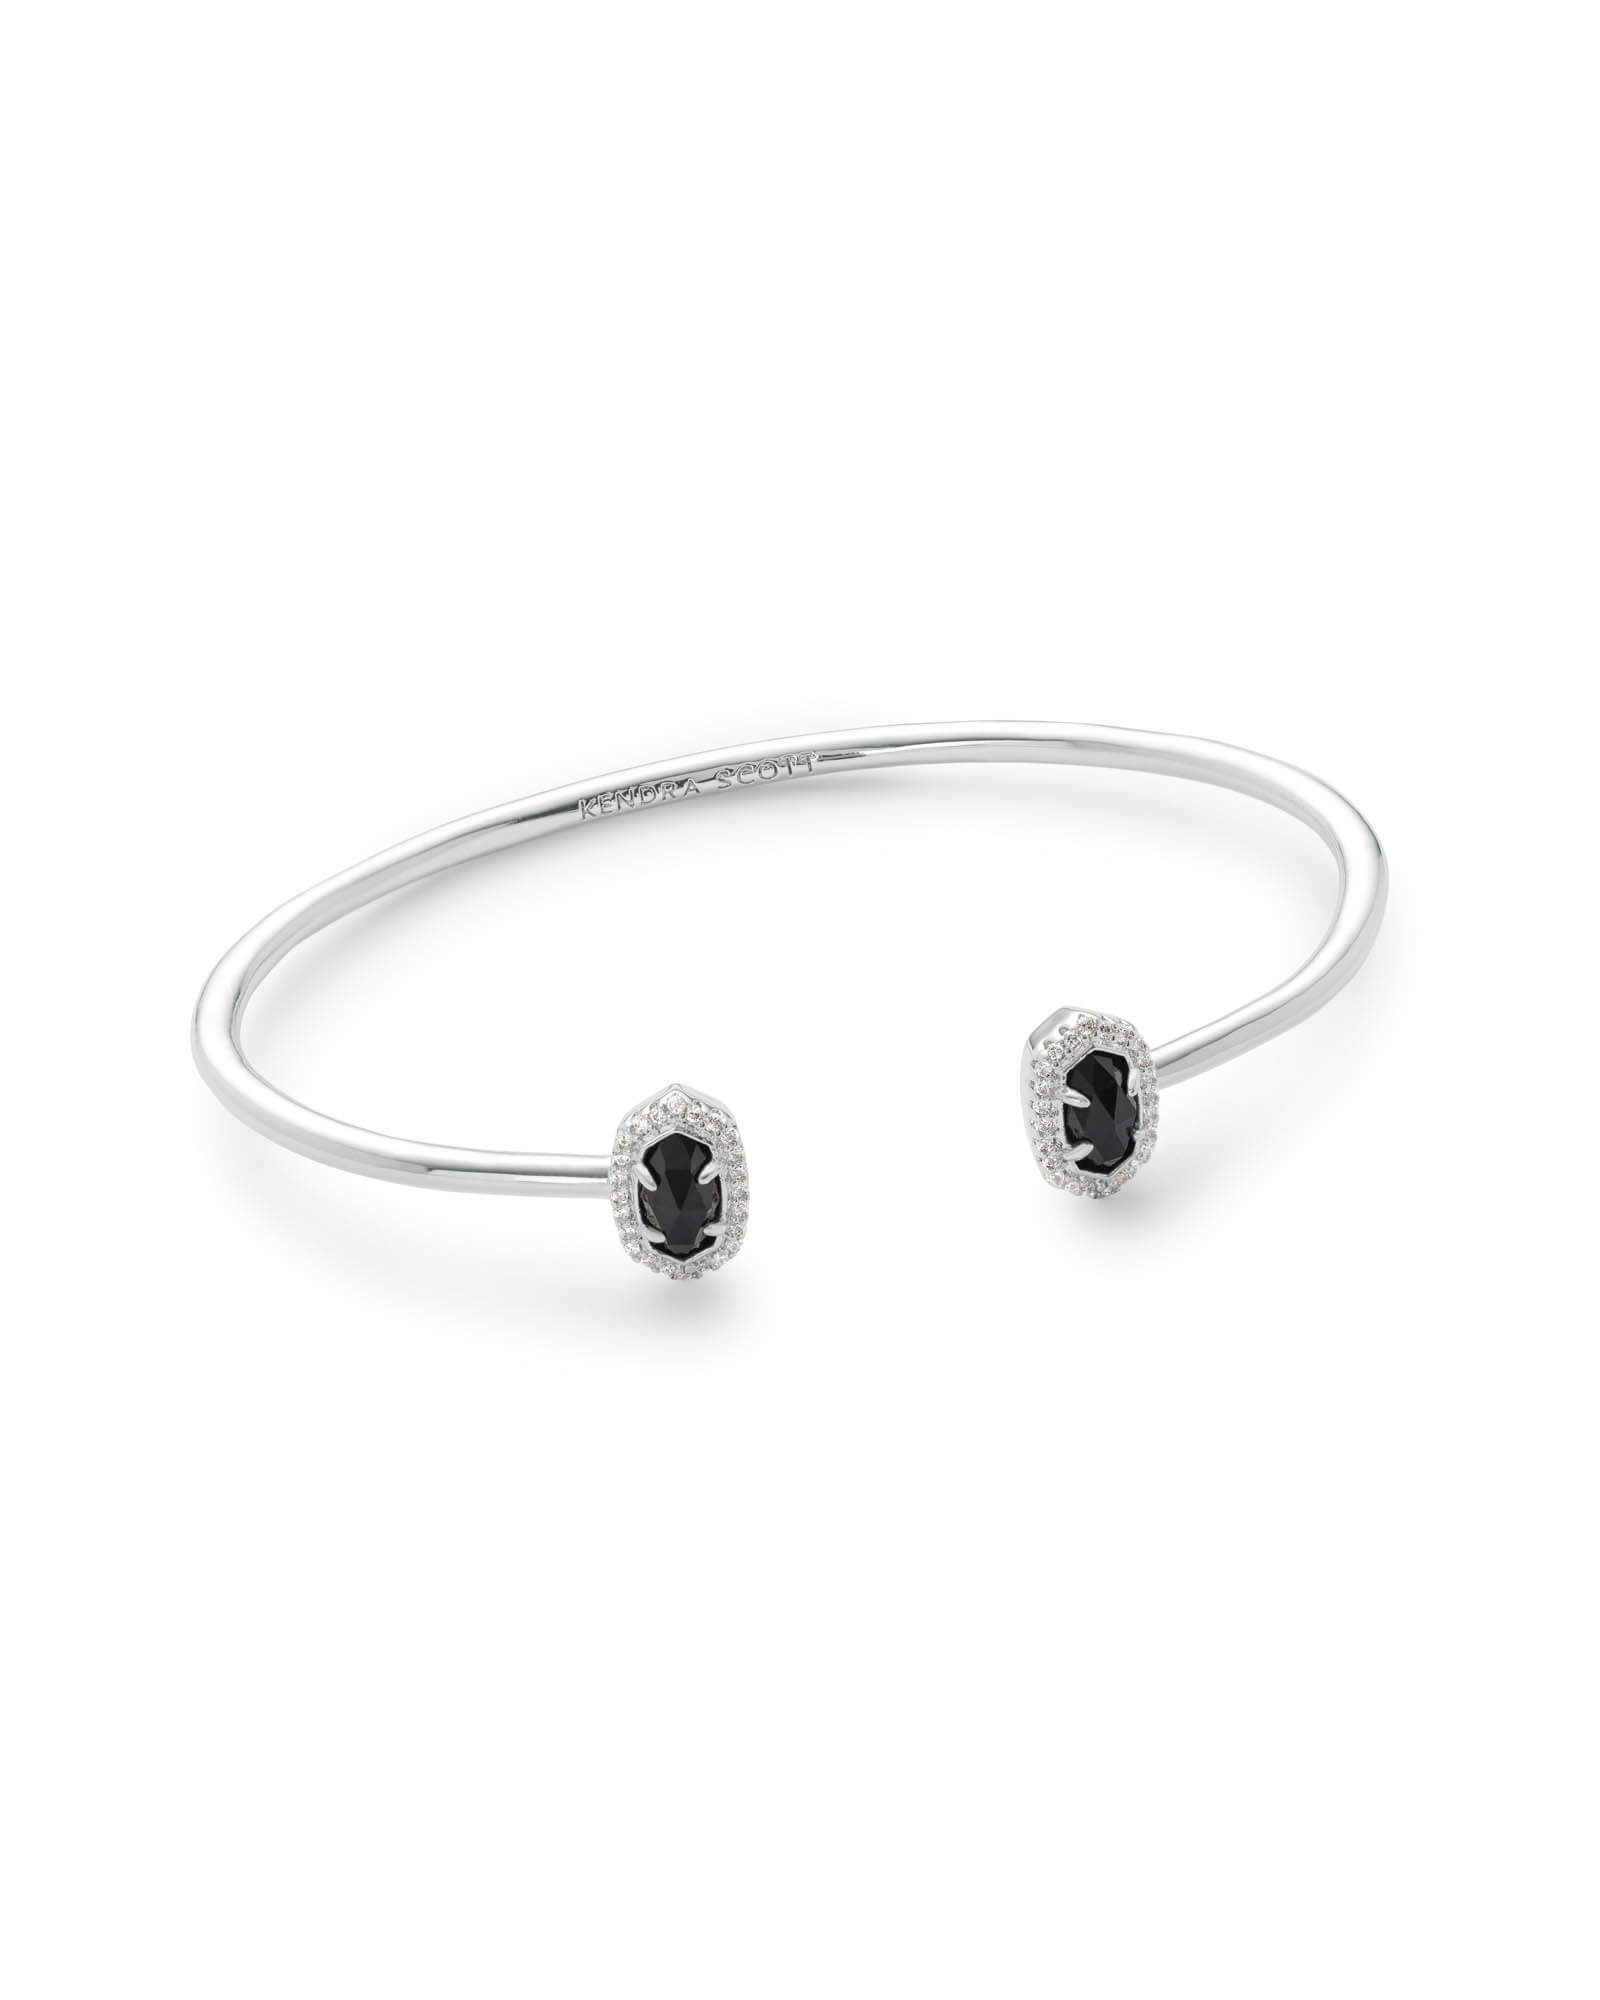 Calla Silver Cuff Bracelet in Black Opaque Glass